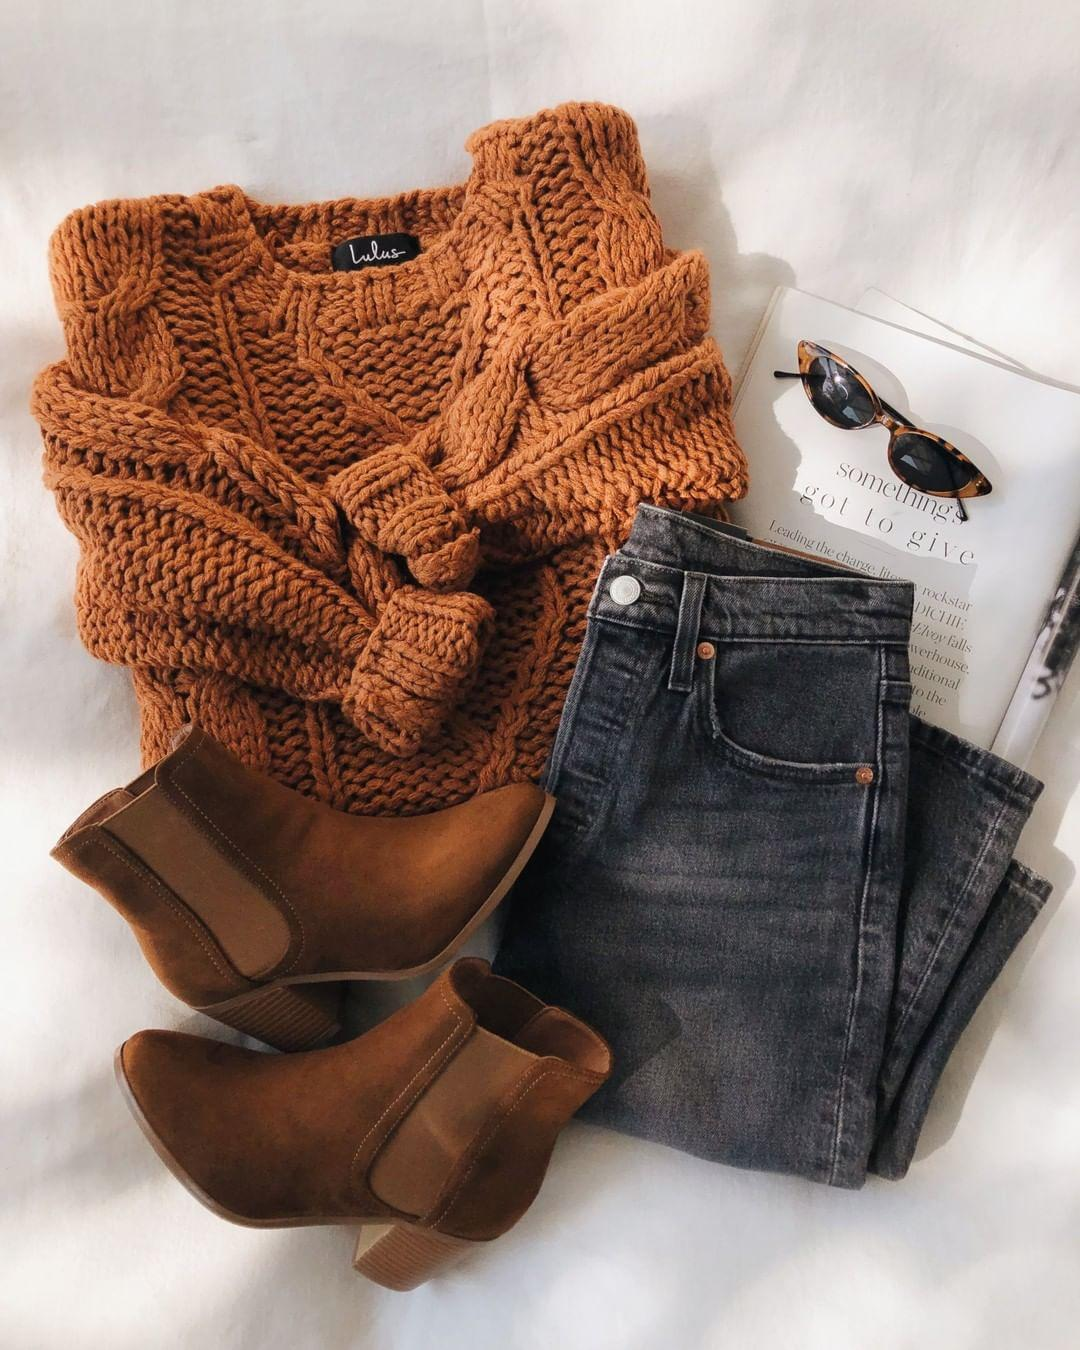 jeans shoes sunglasses sweater